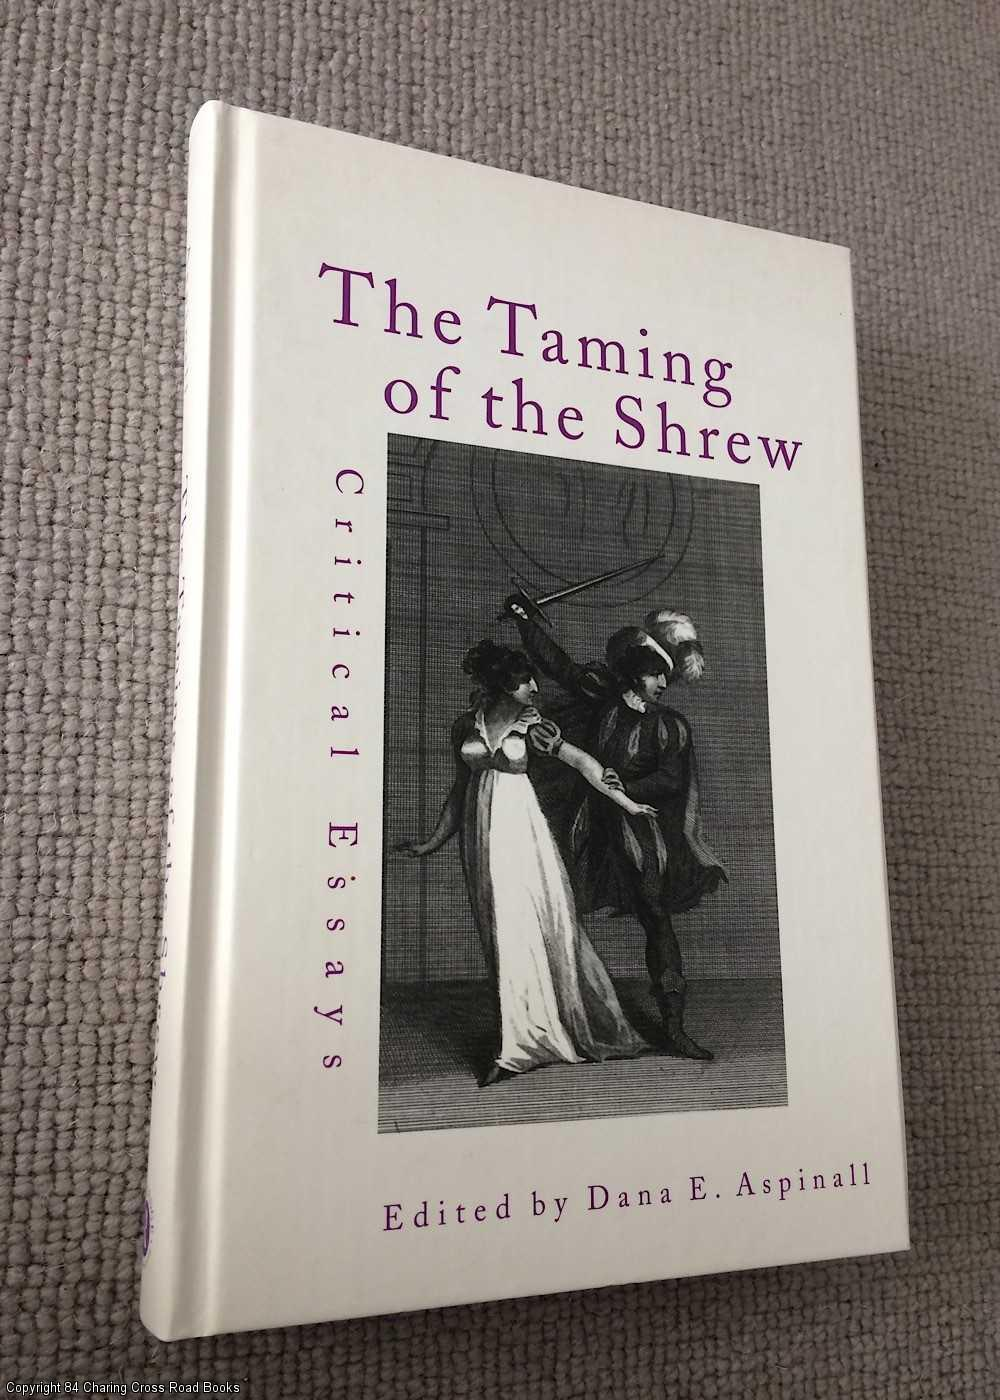 taming of the shrew critical lens William shakespeare book description: the taming of the shrew begins with a framing device, often referred to as the induction, in which a mischievous nobleman tricks a drunken tinker named christopher sly into believing he is actually a nobleman himself.